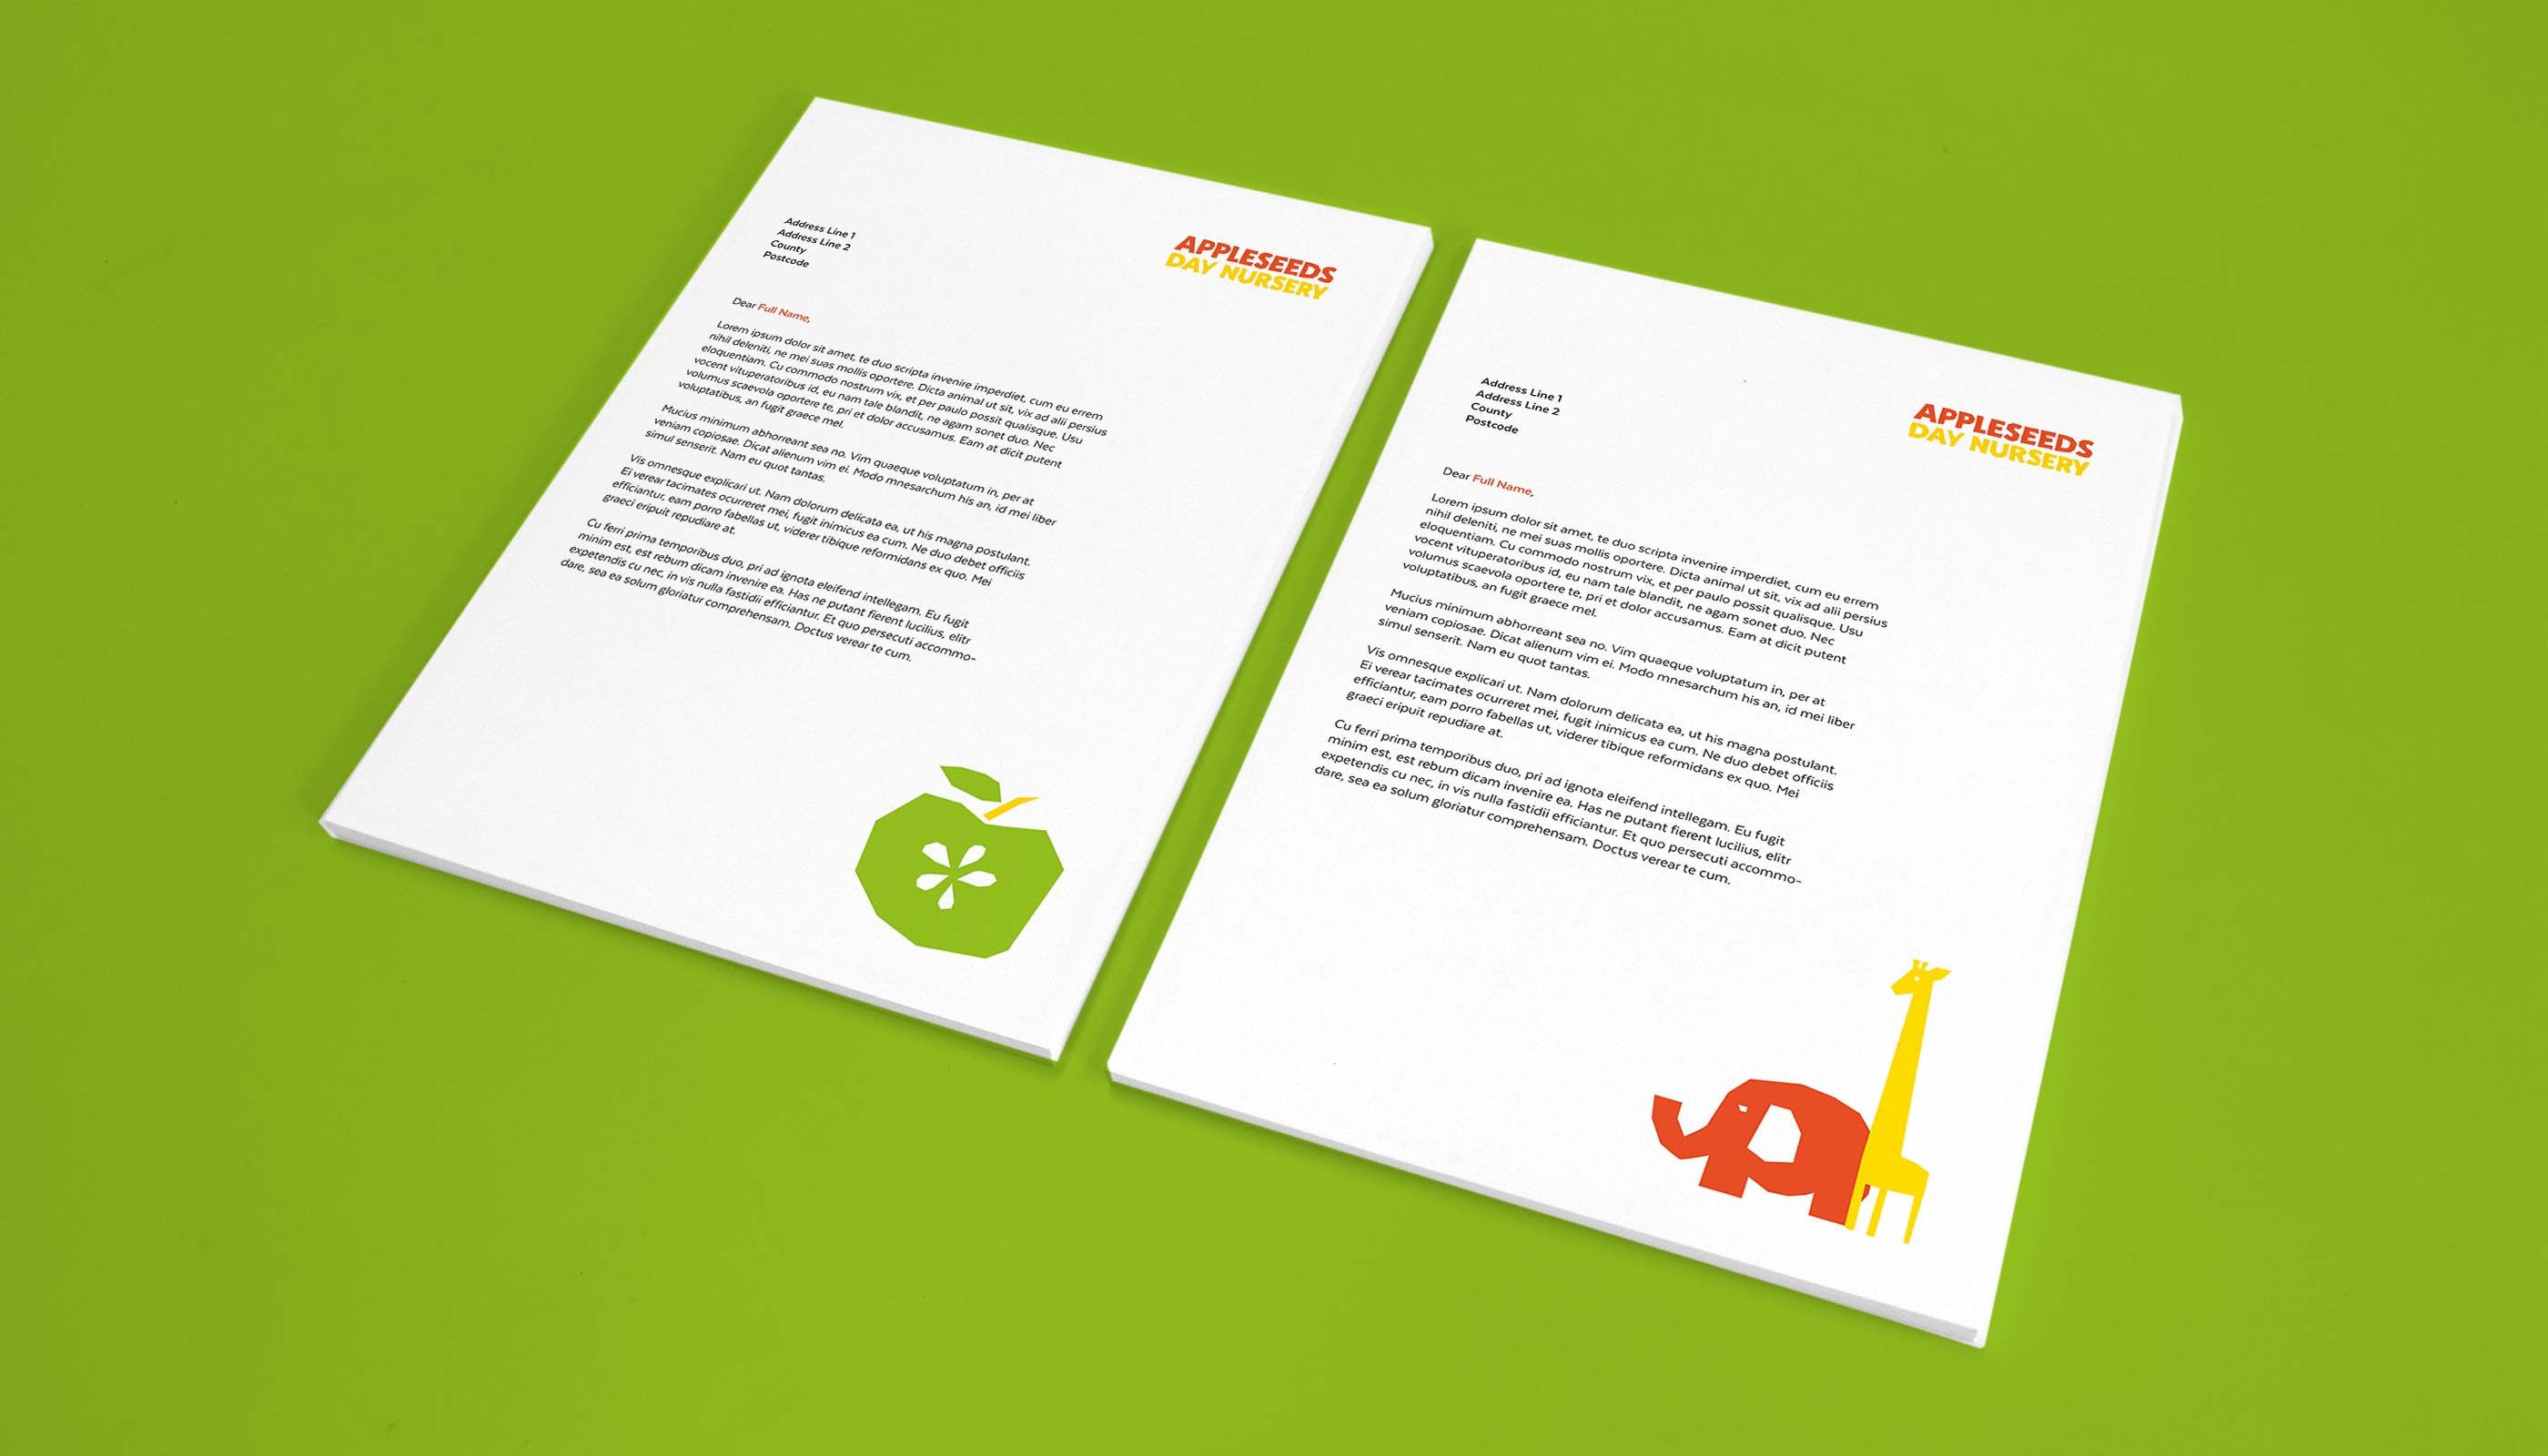 Proposed letterhead design for Appleseeds Day Nursery in Ipswich, Suffolk.